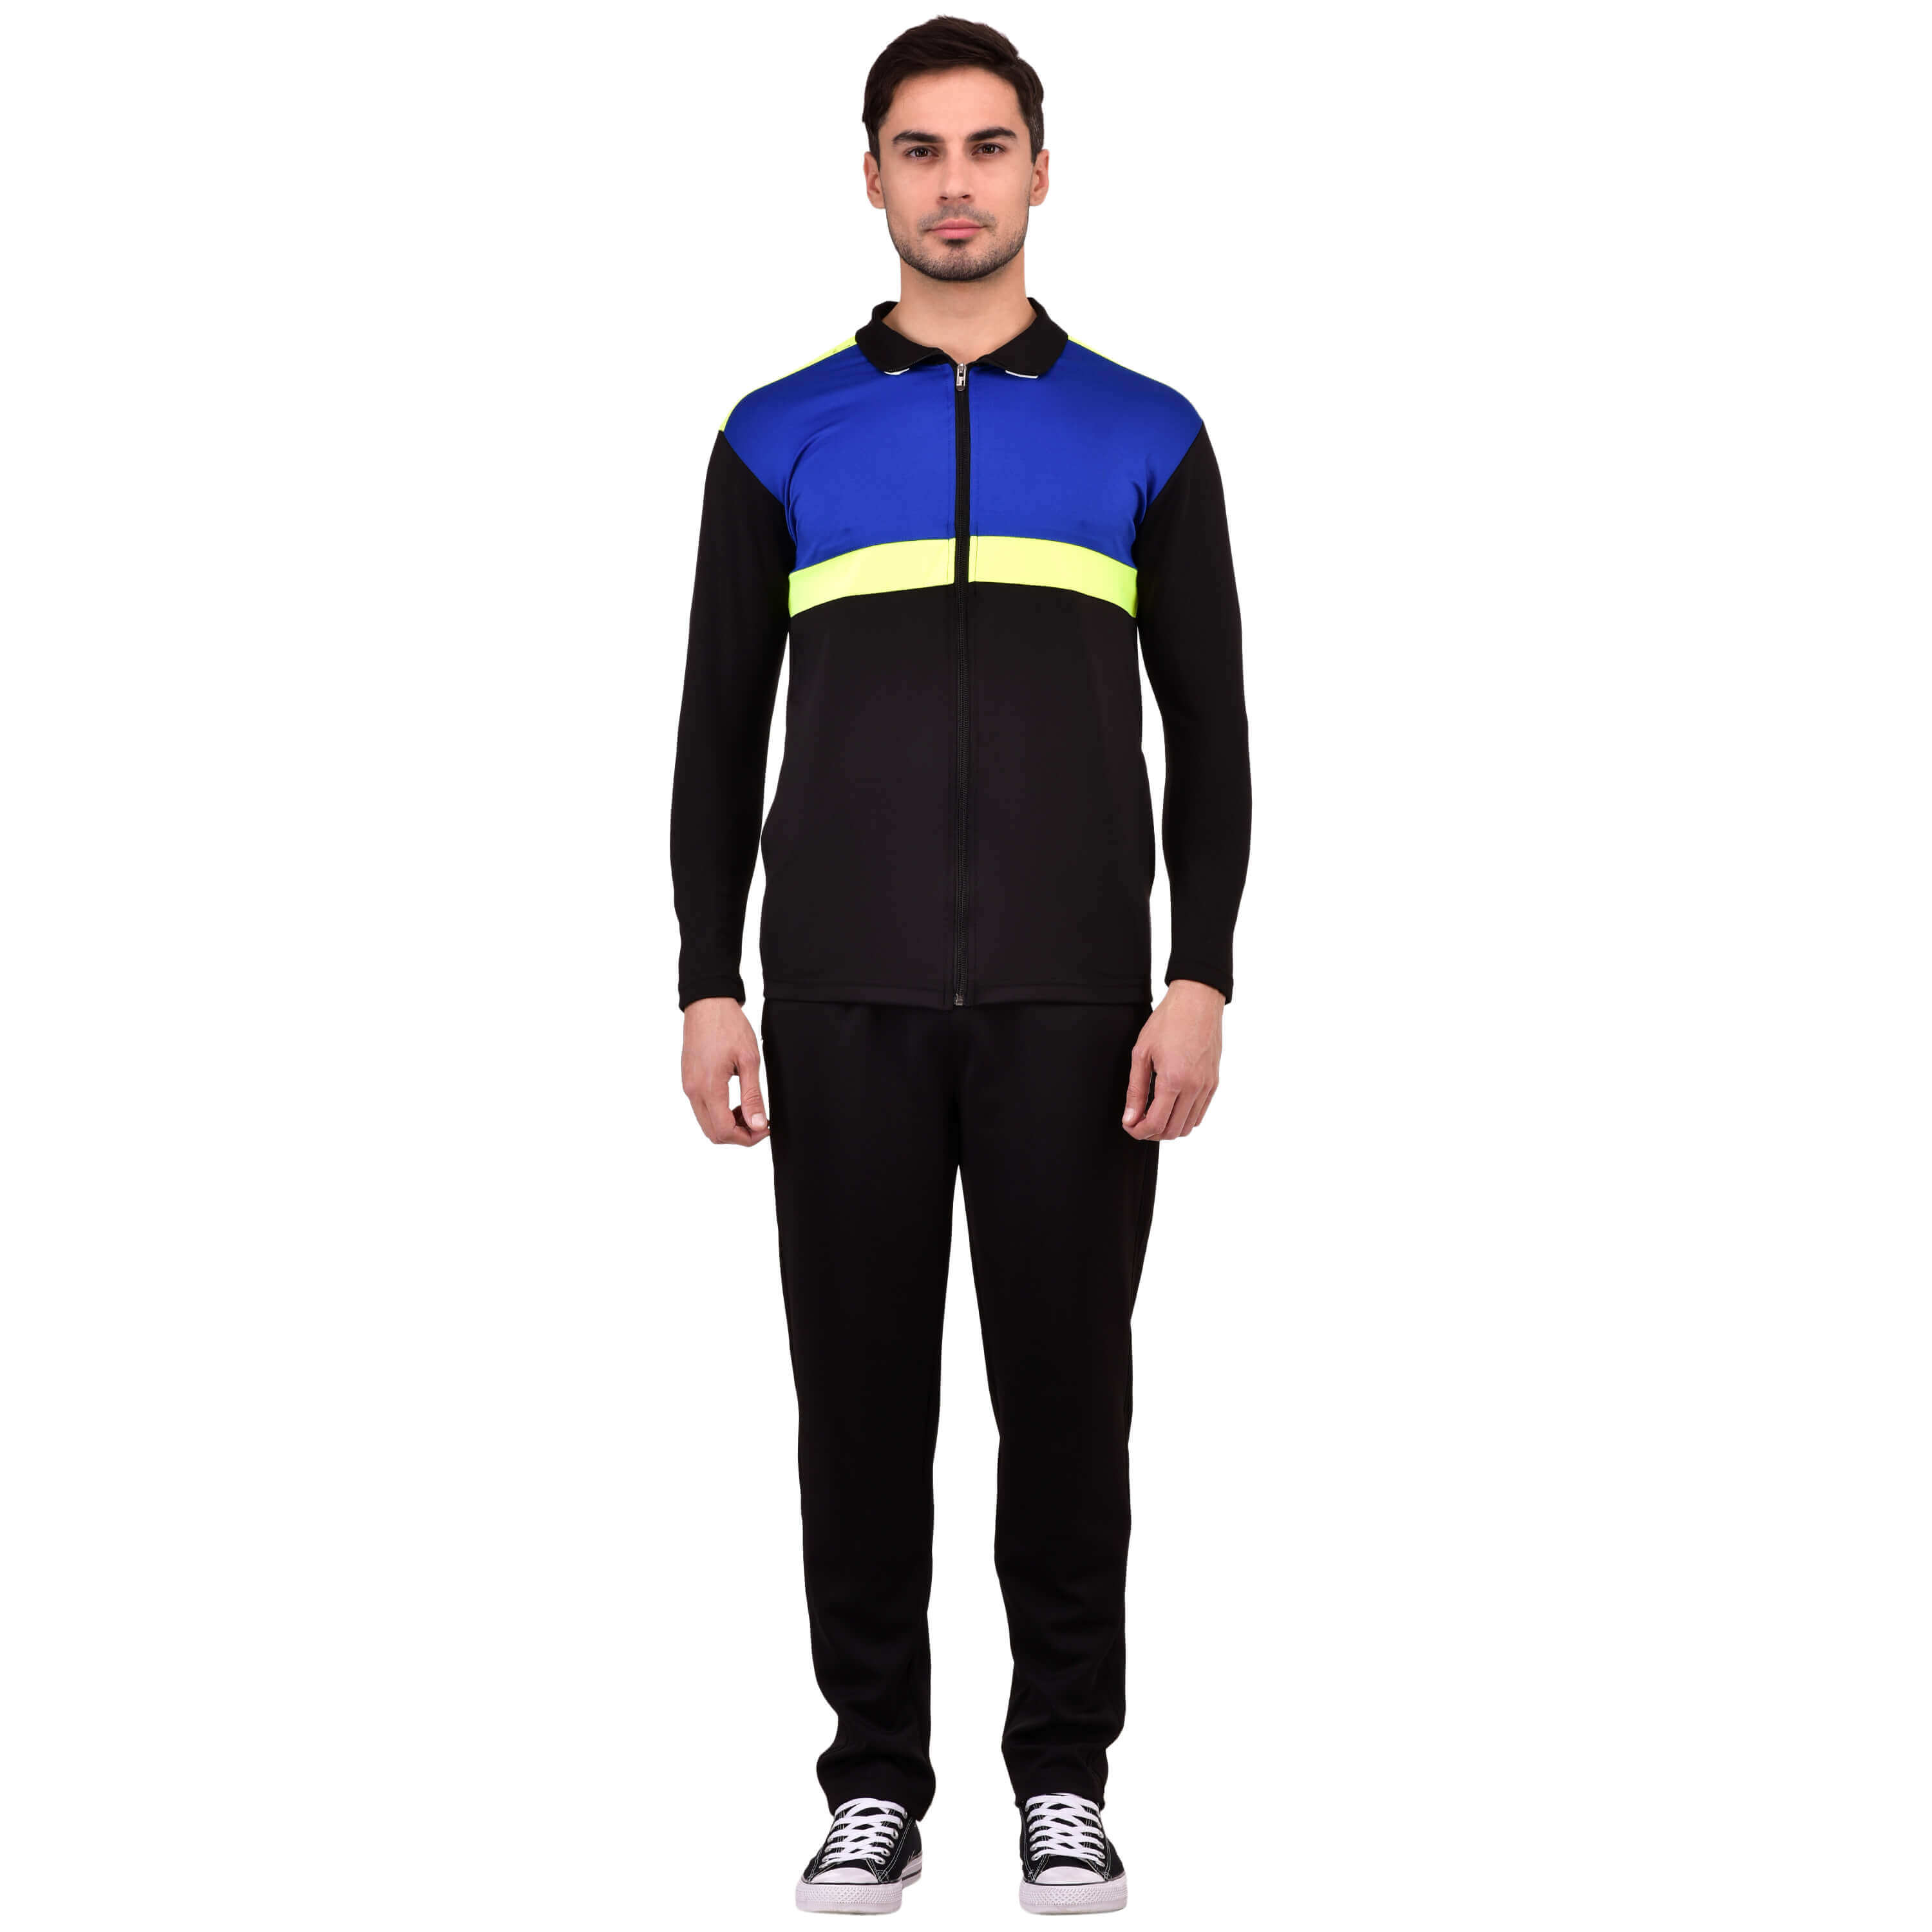 Mens Black Tracksuit Manufacturers in Nanded